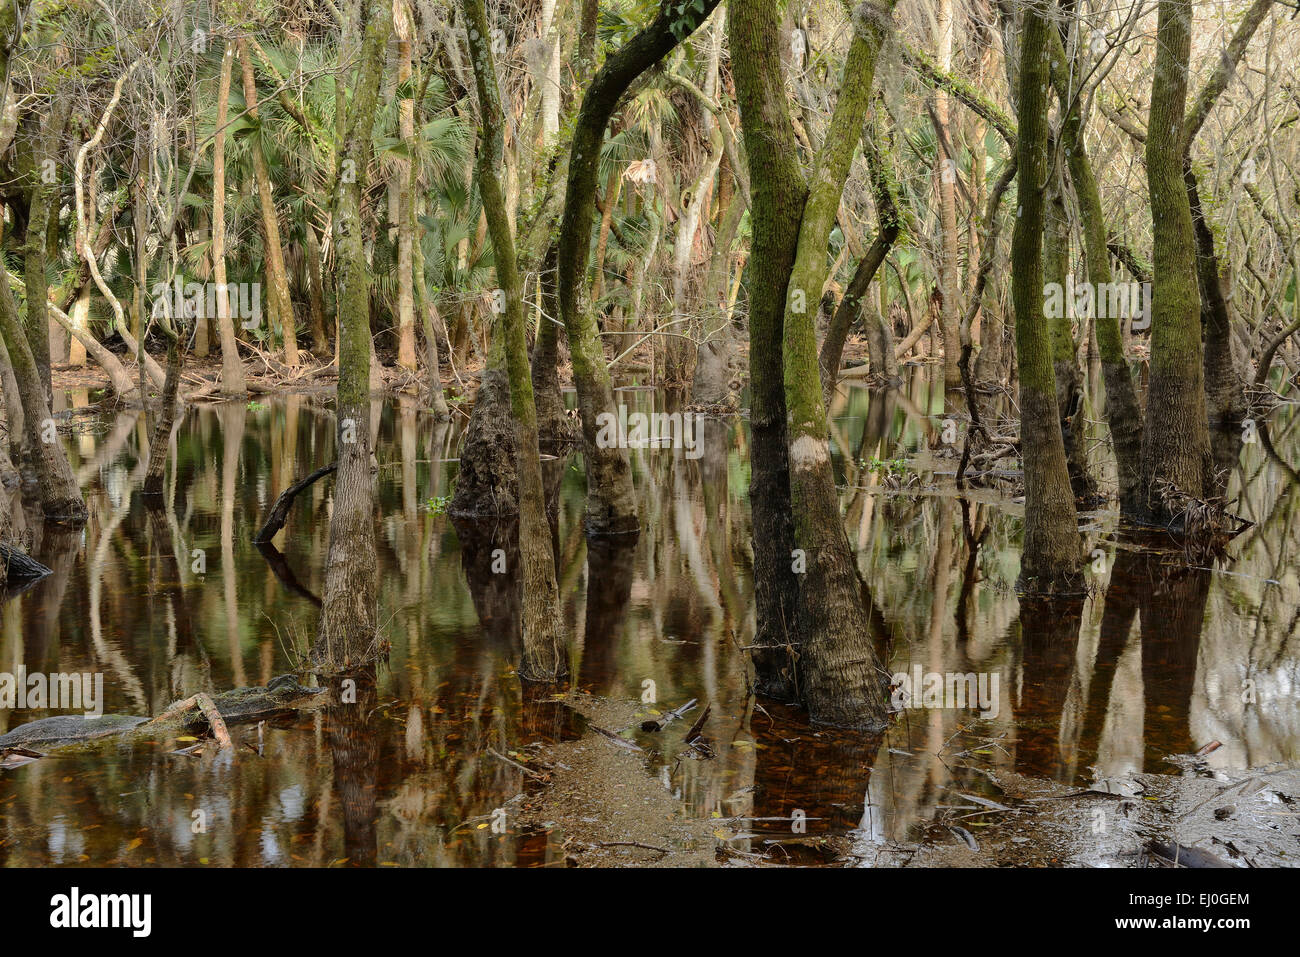 USA, Florida, Myakka River, State Park, swamp forest - Stock Image